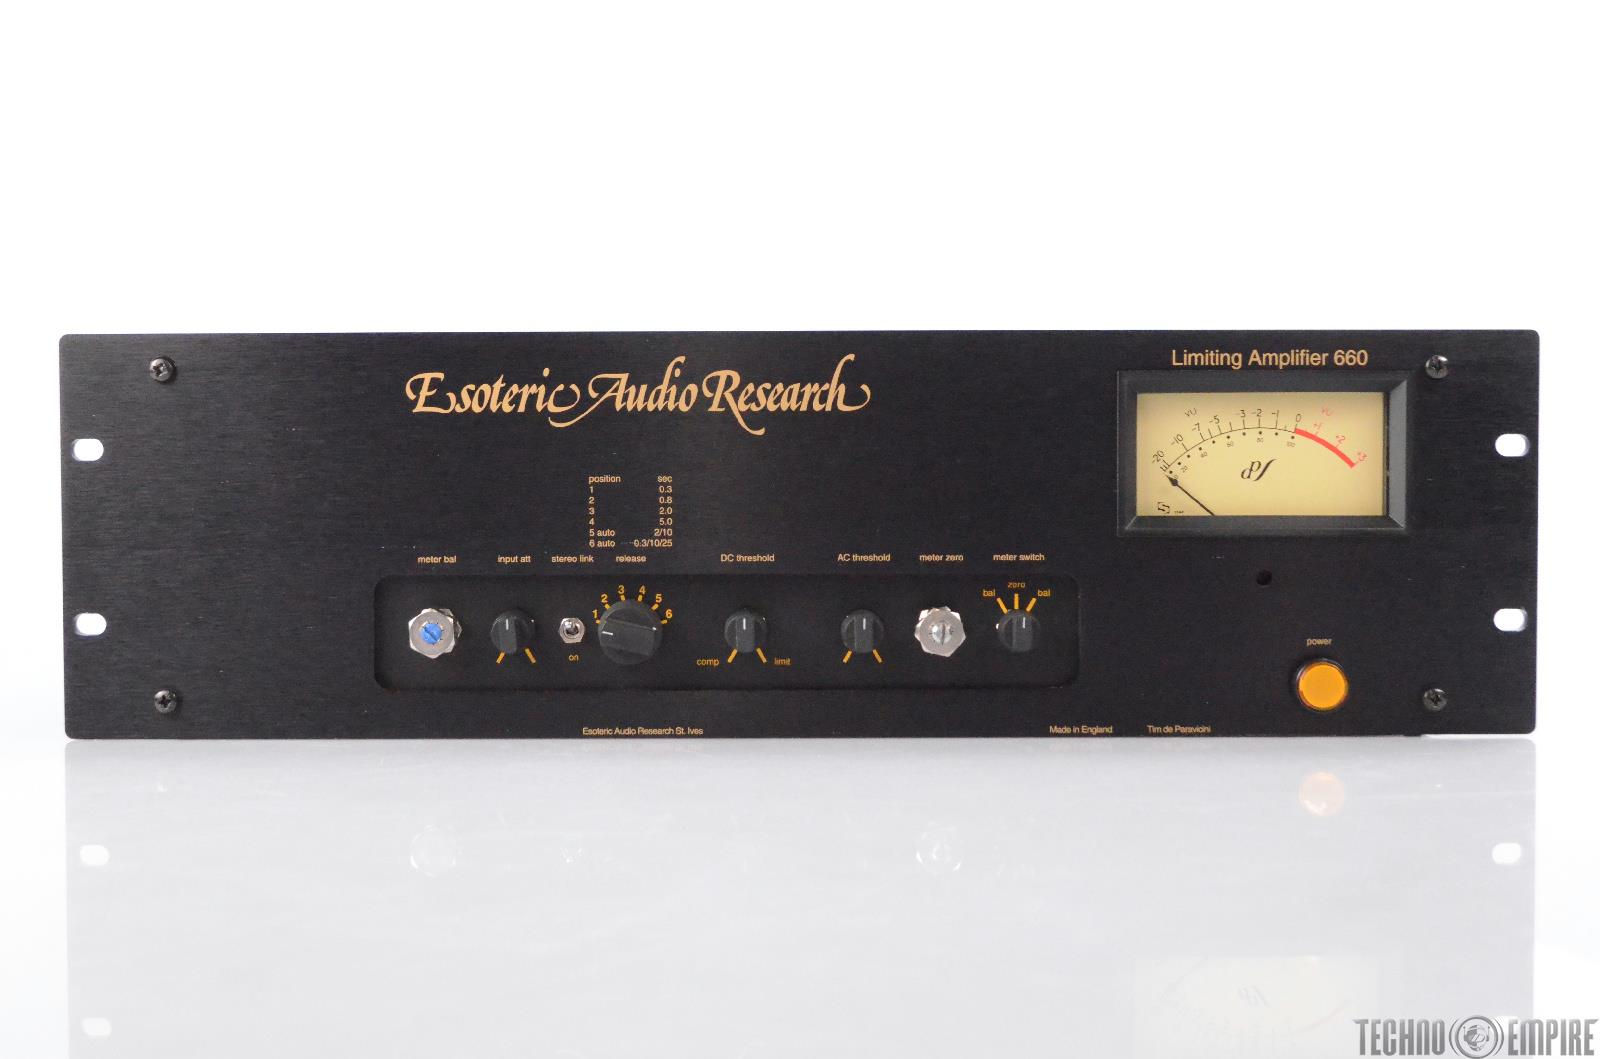 EAR Limiting Amplifier 660 Esoteric Audio Research Limiter Compressor #30996